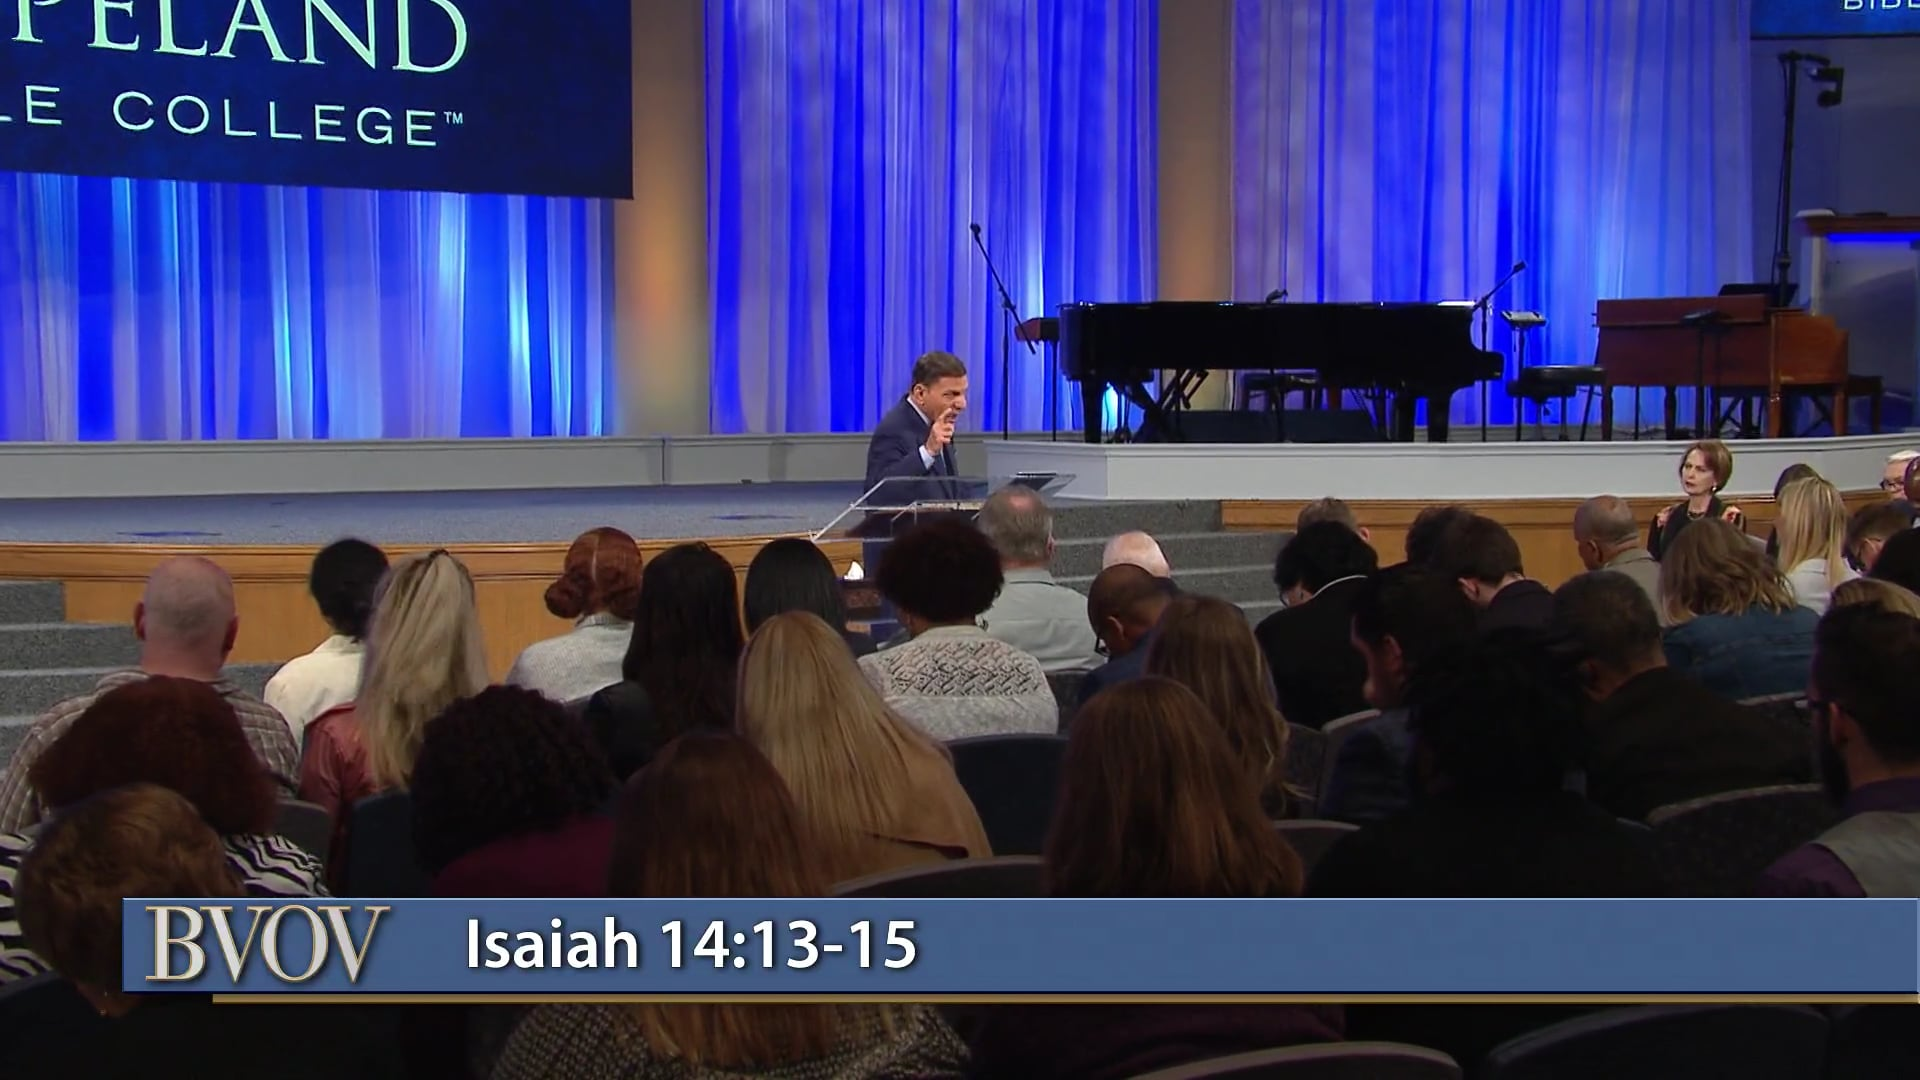 Did God create iniquity? Watch Believer's Voice of Victory as Kenneth Copeland shares how God never created anything bad. Discover how iniquity was found in satan, which is why hell was created for him and his angels—not people. God desires only goodness for you, and He wants you to prosper in all things!